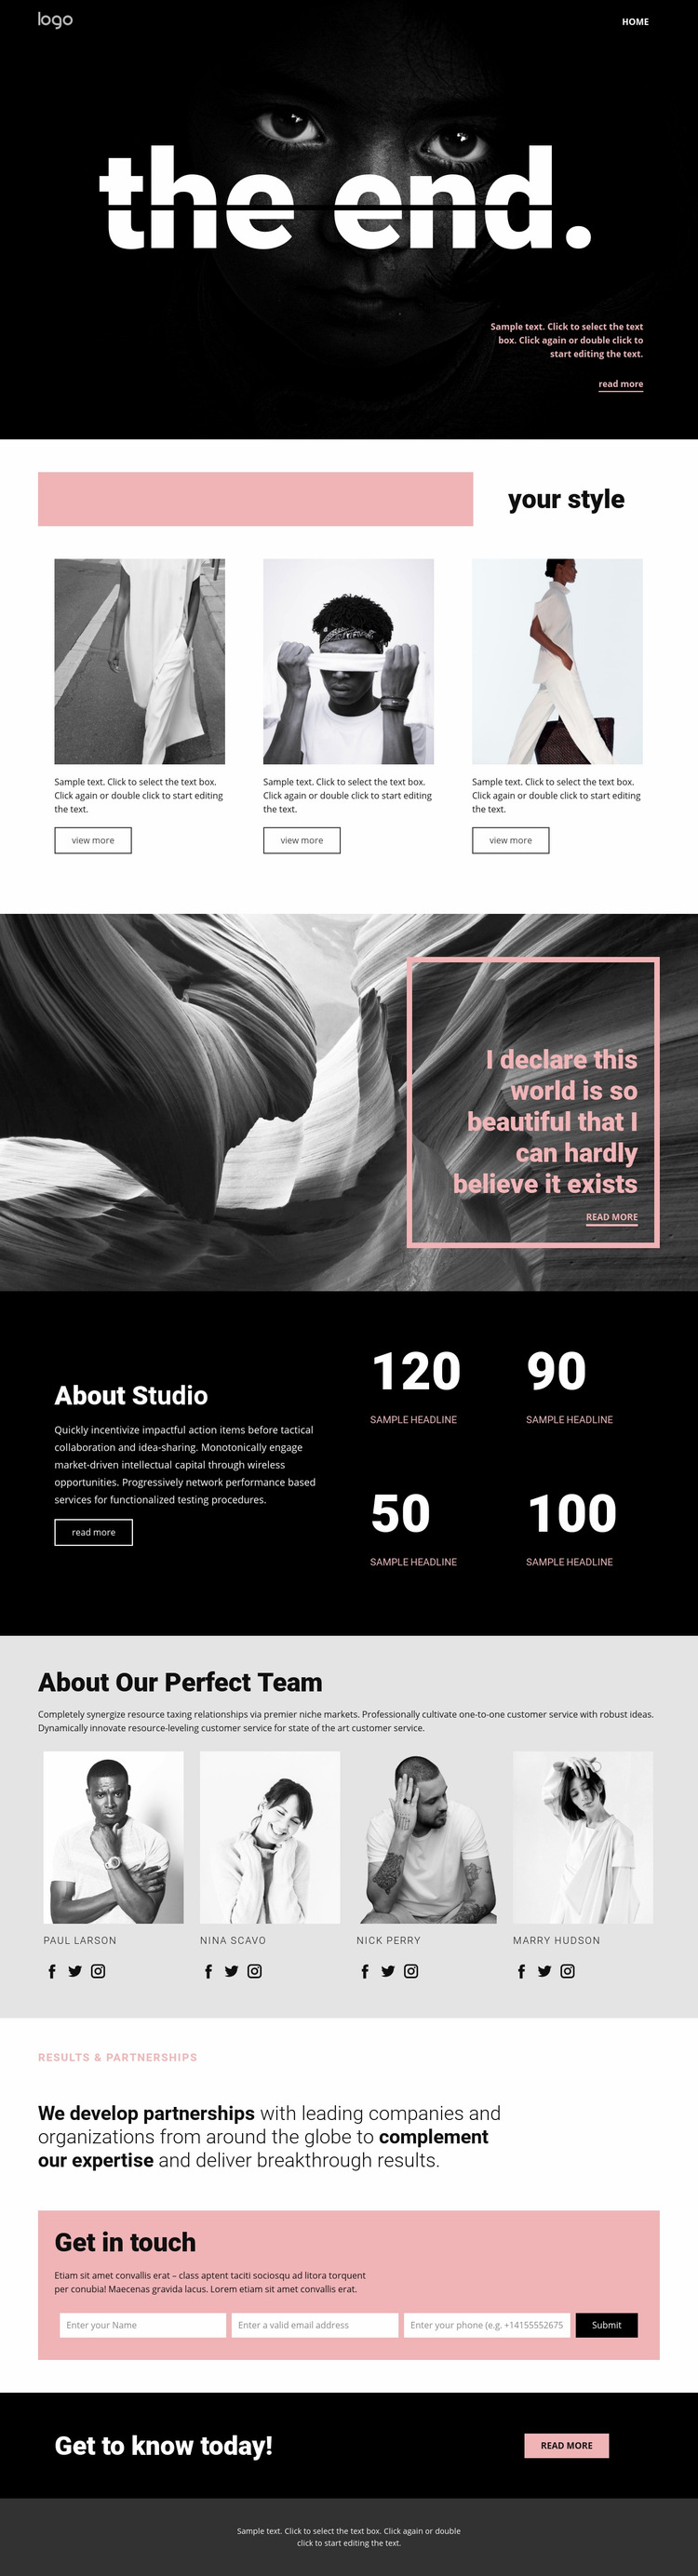 Perfecting styles of art Web Page Design